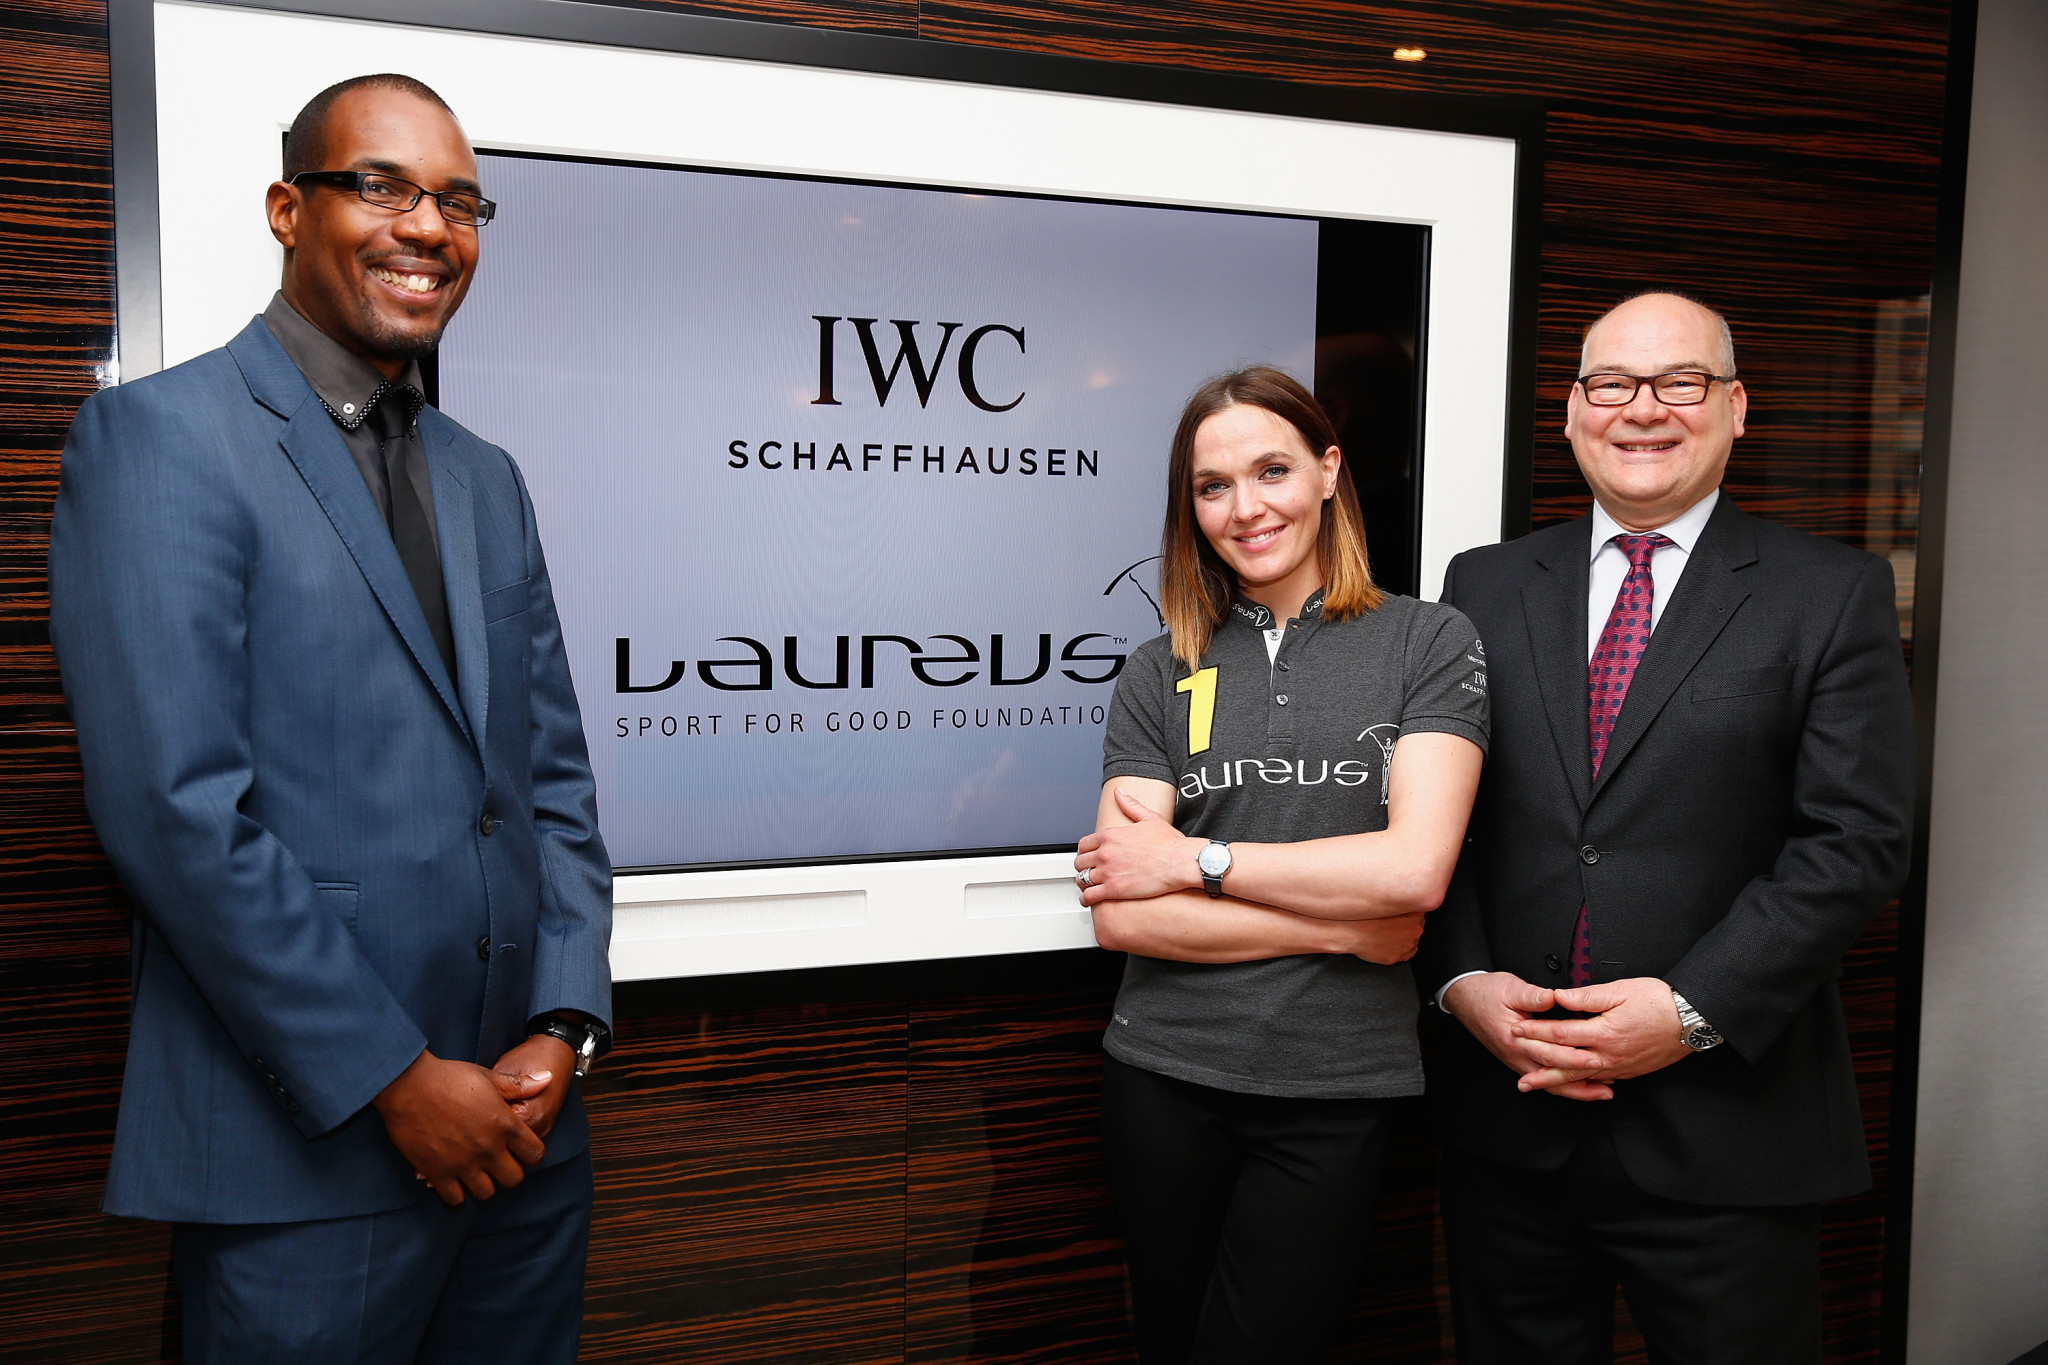 Laureus IWC Watch Launch in the UK